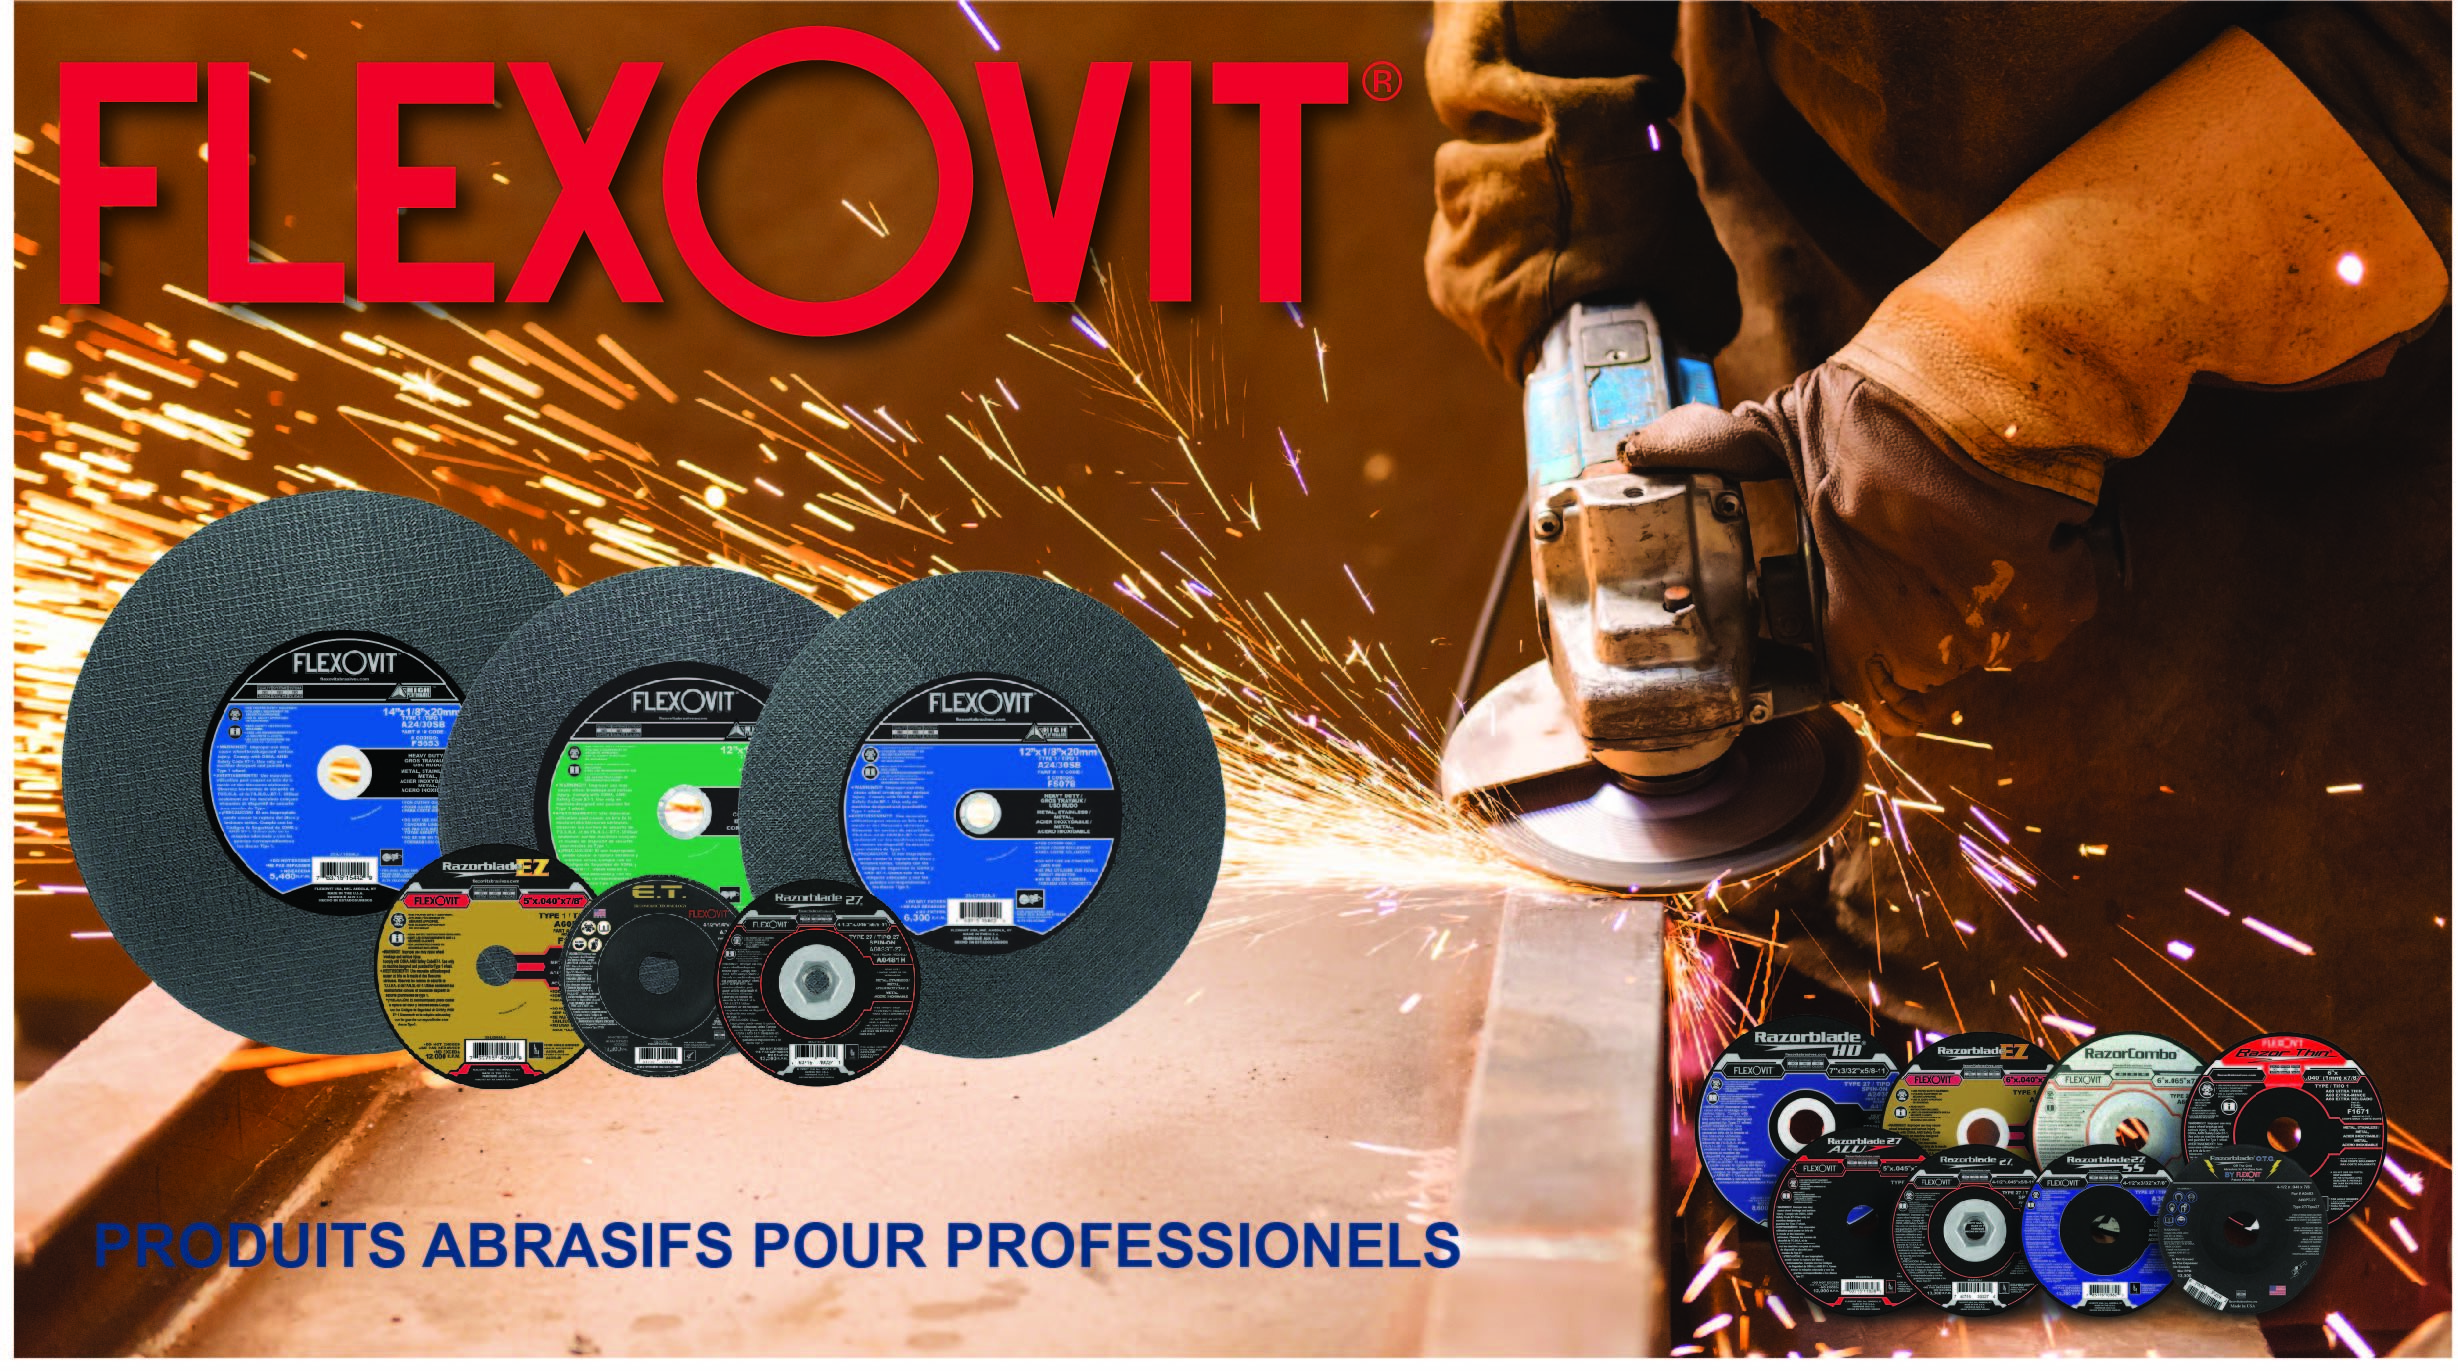 Flexovit CM Equipment Banner Ad French 3.0